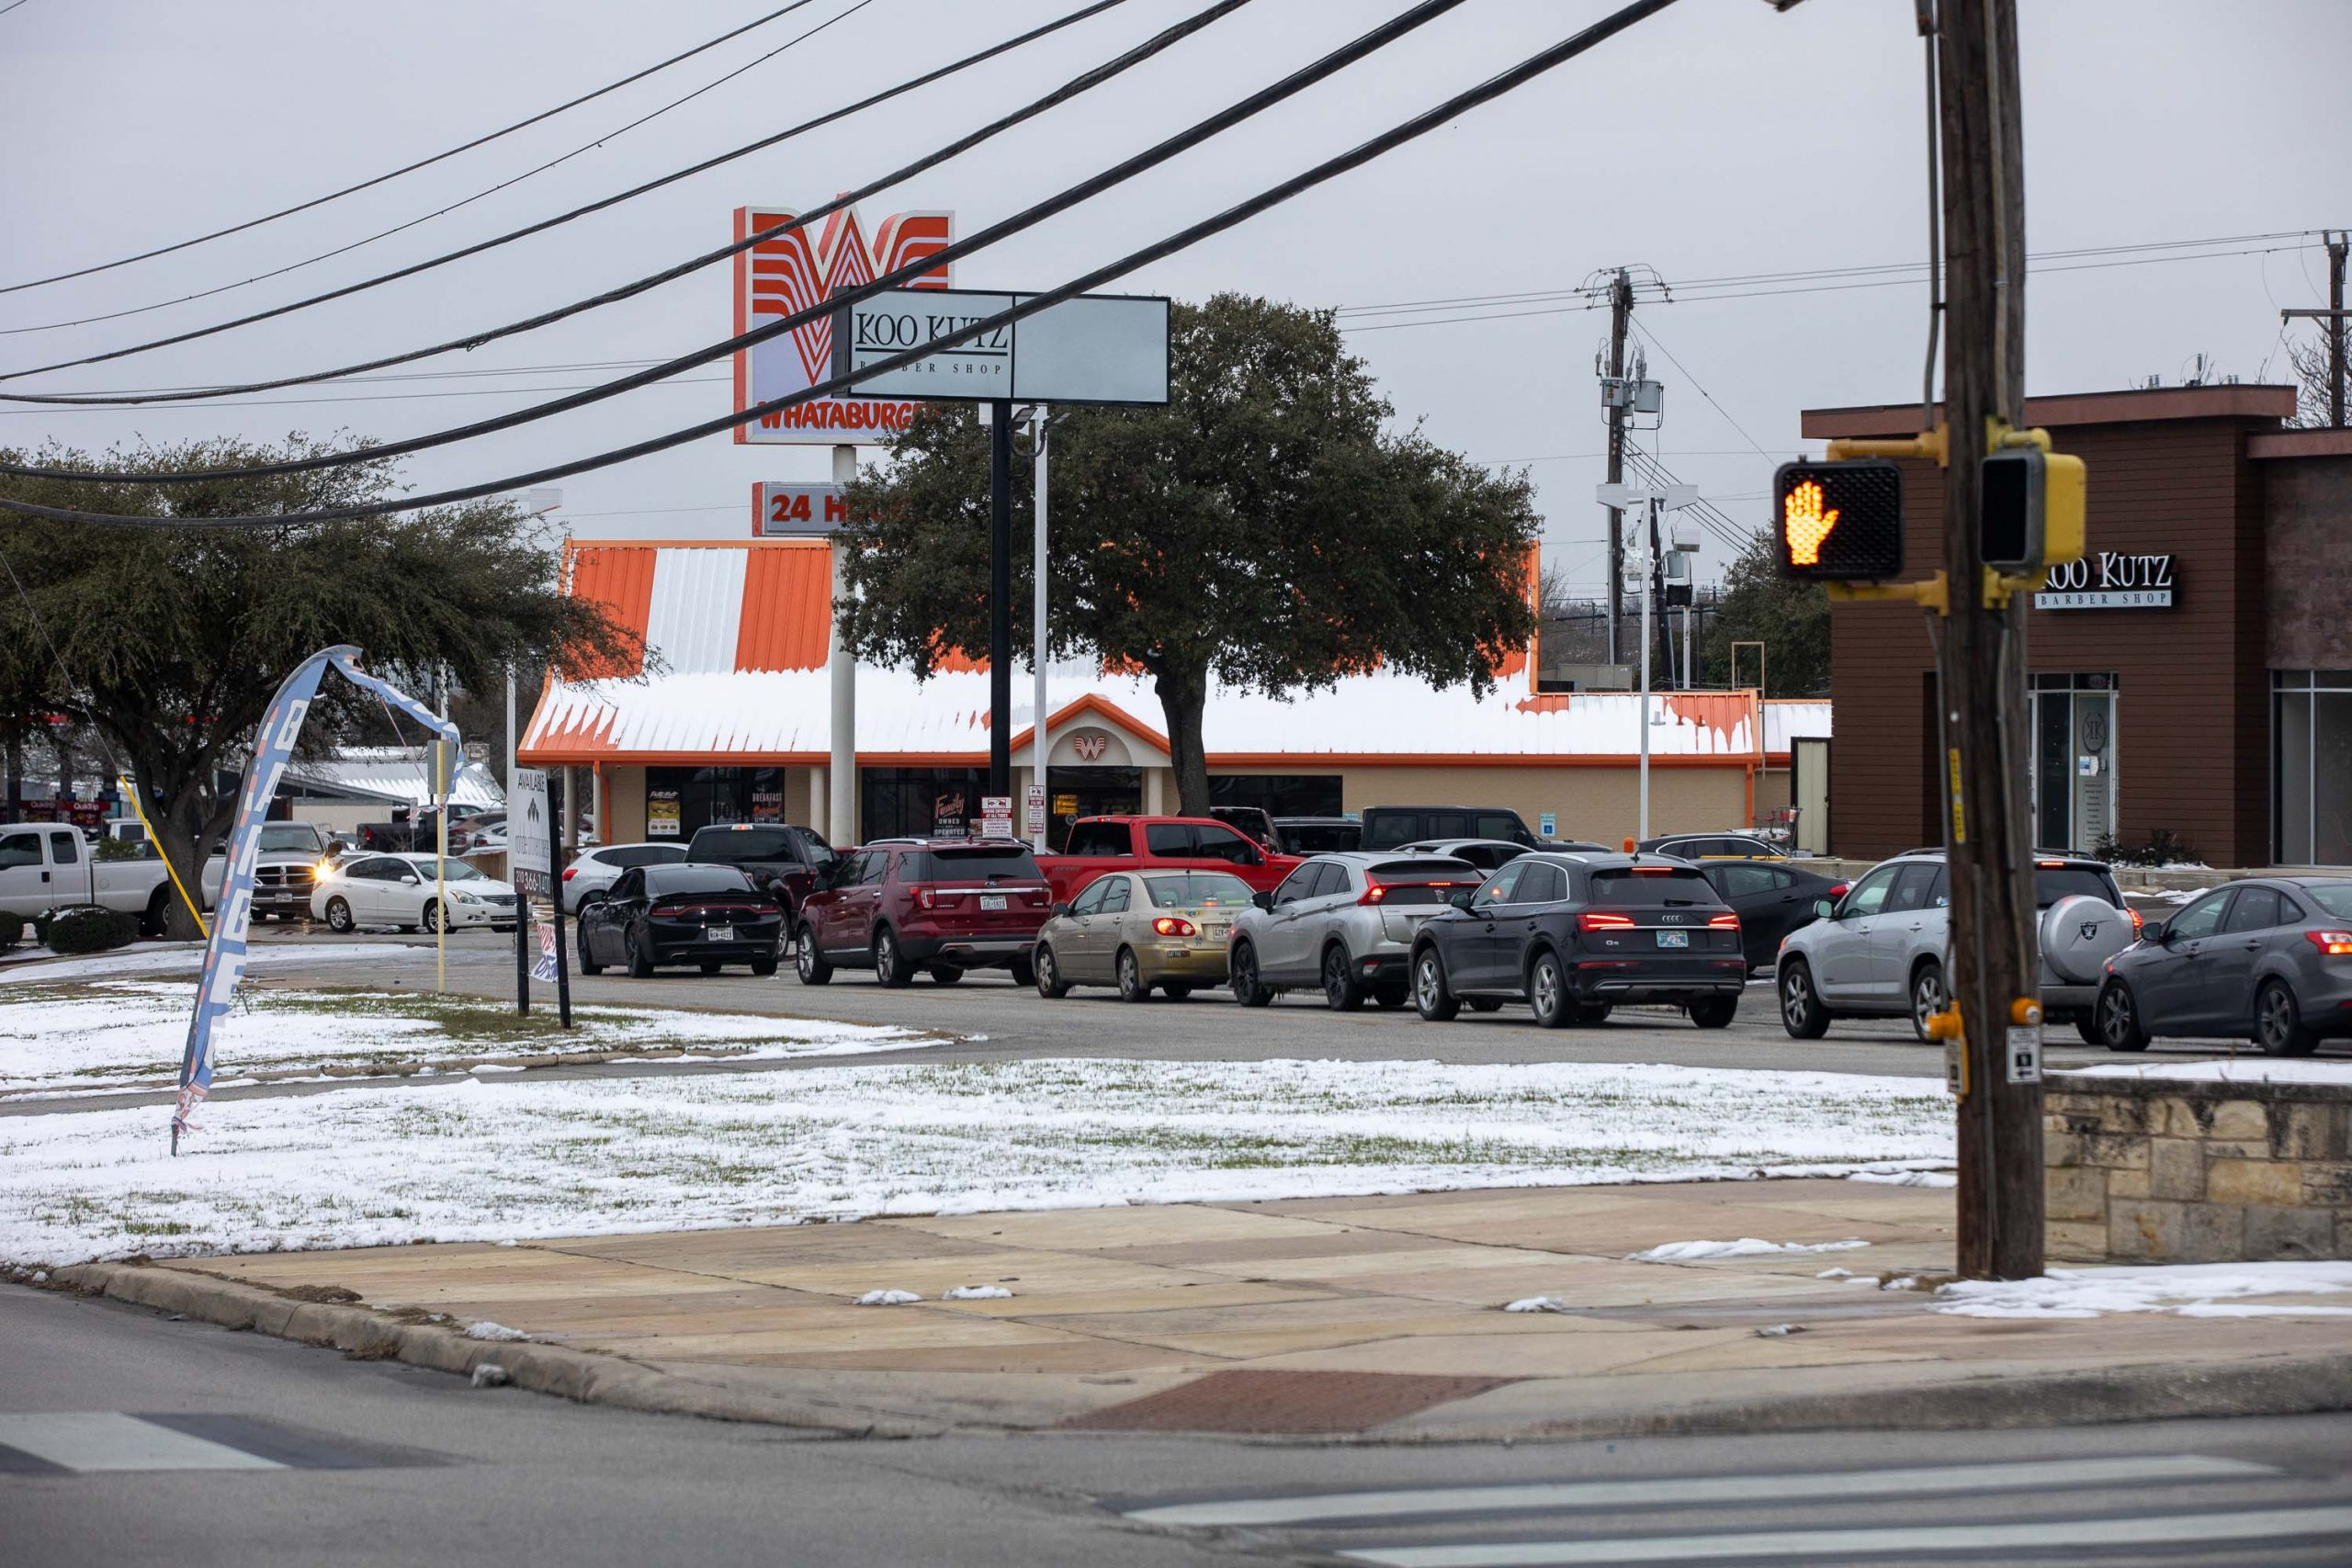 Whataburger gave out $90 million in bonuses to workers